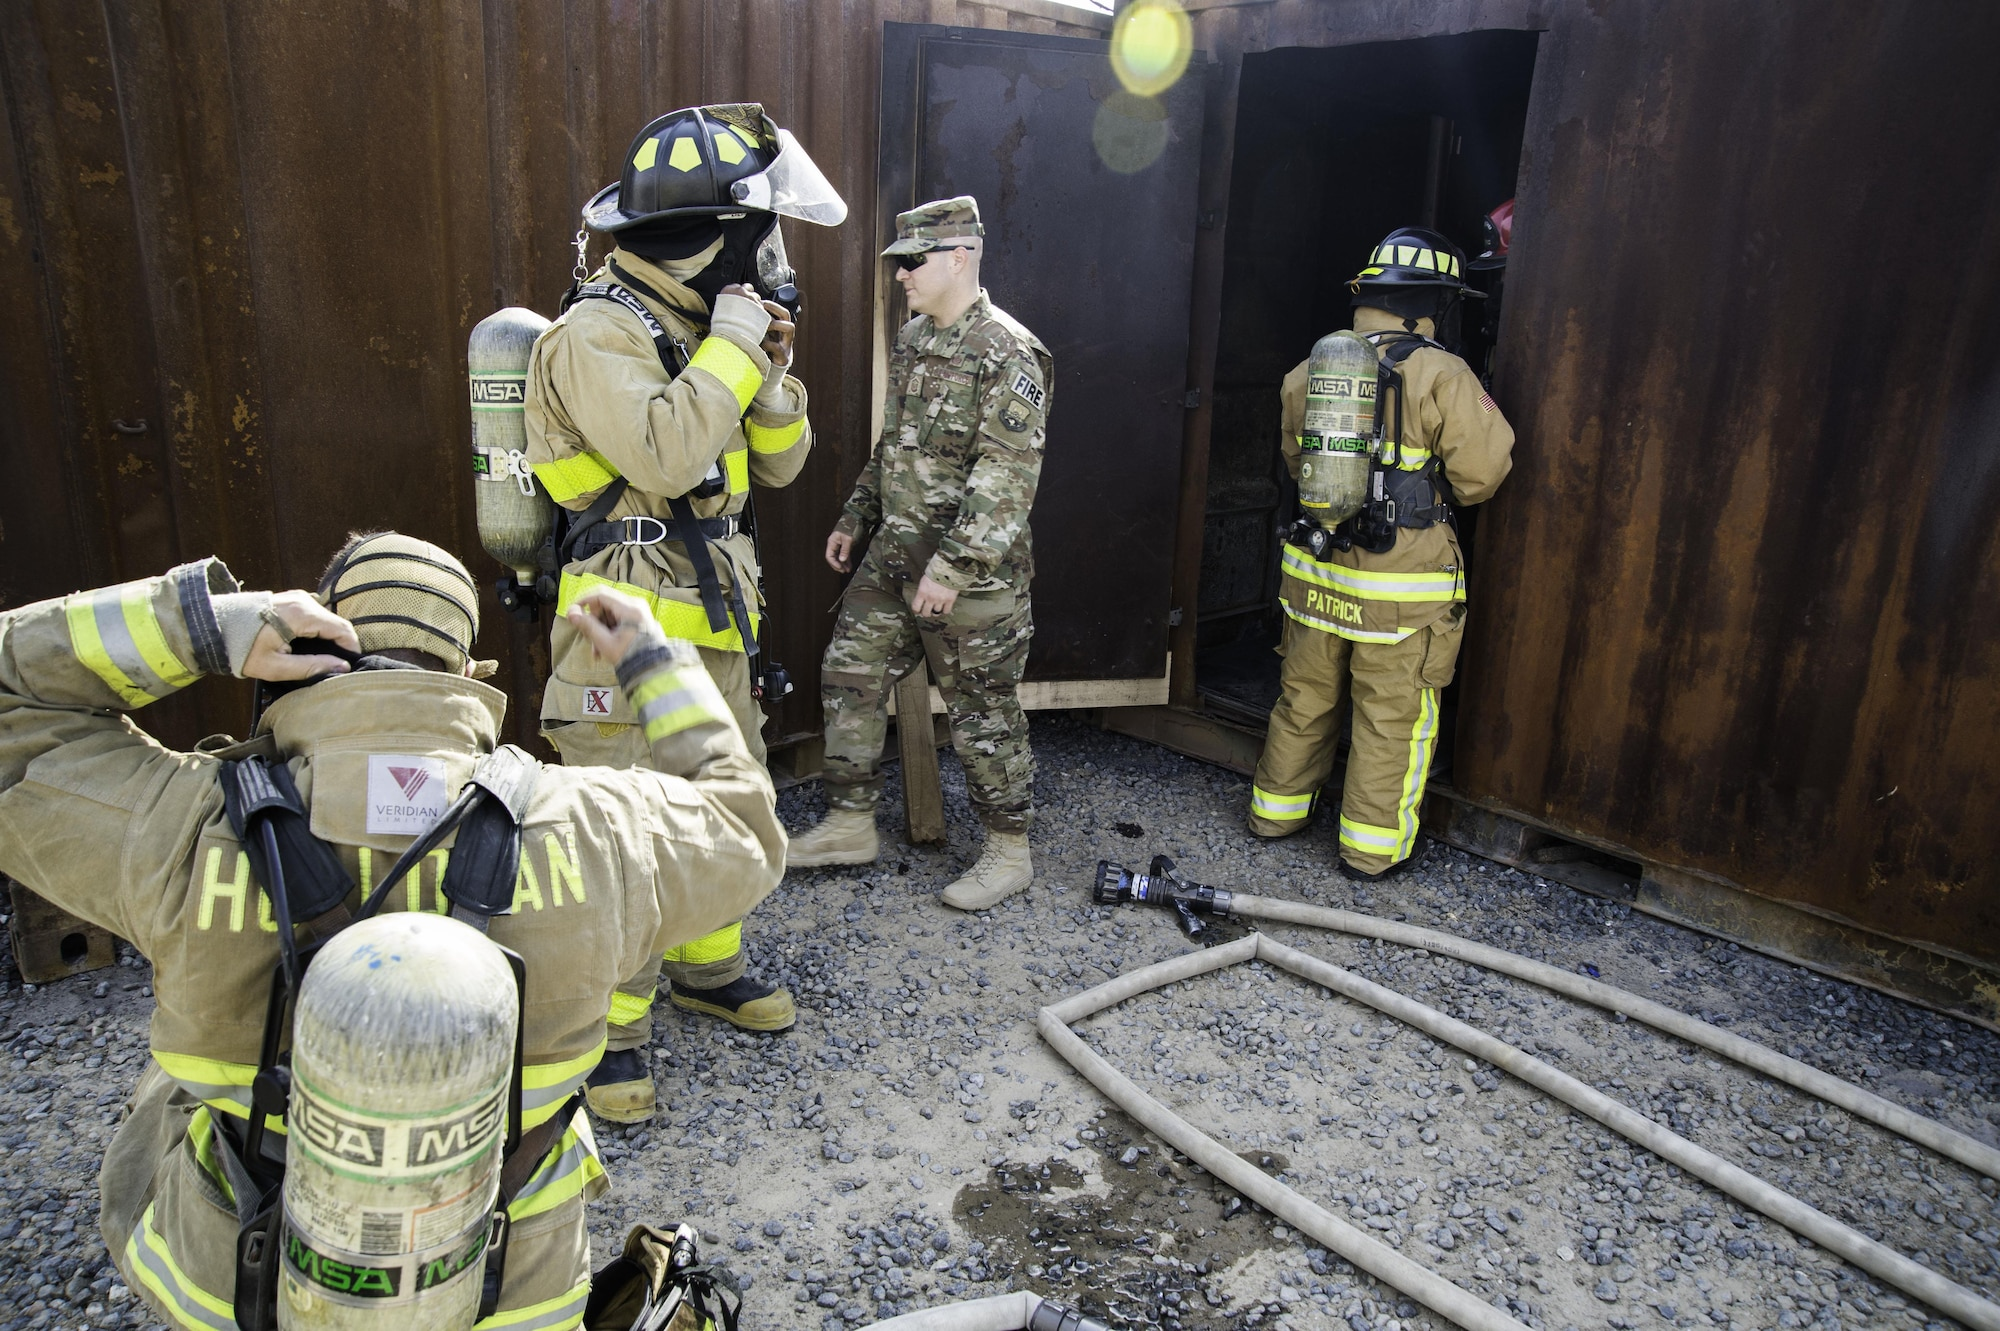 Airmen from the 386th Expeditionary Civil Engineer Squadron Fire Department prepare to enter a live fire training facility at an undisclosed location in Southwest Asia, Oct. 20, 2017. The live fire training comes at the heels of National Fire Prevention week, which encouraged people to have multiple plans of escape in case of an emergency. (Air Force photo by Staff Sgt. William Banton)